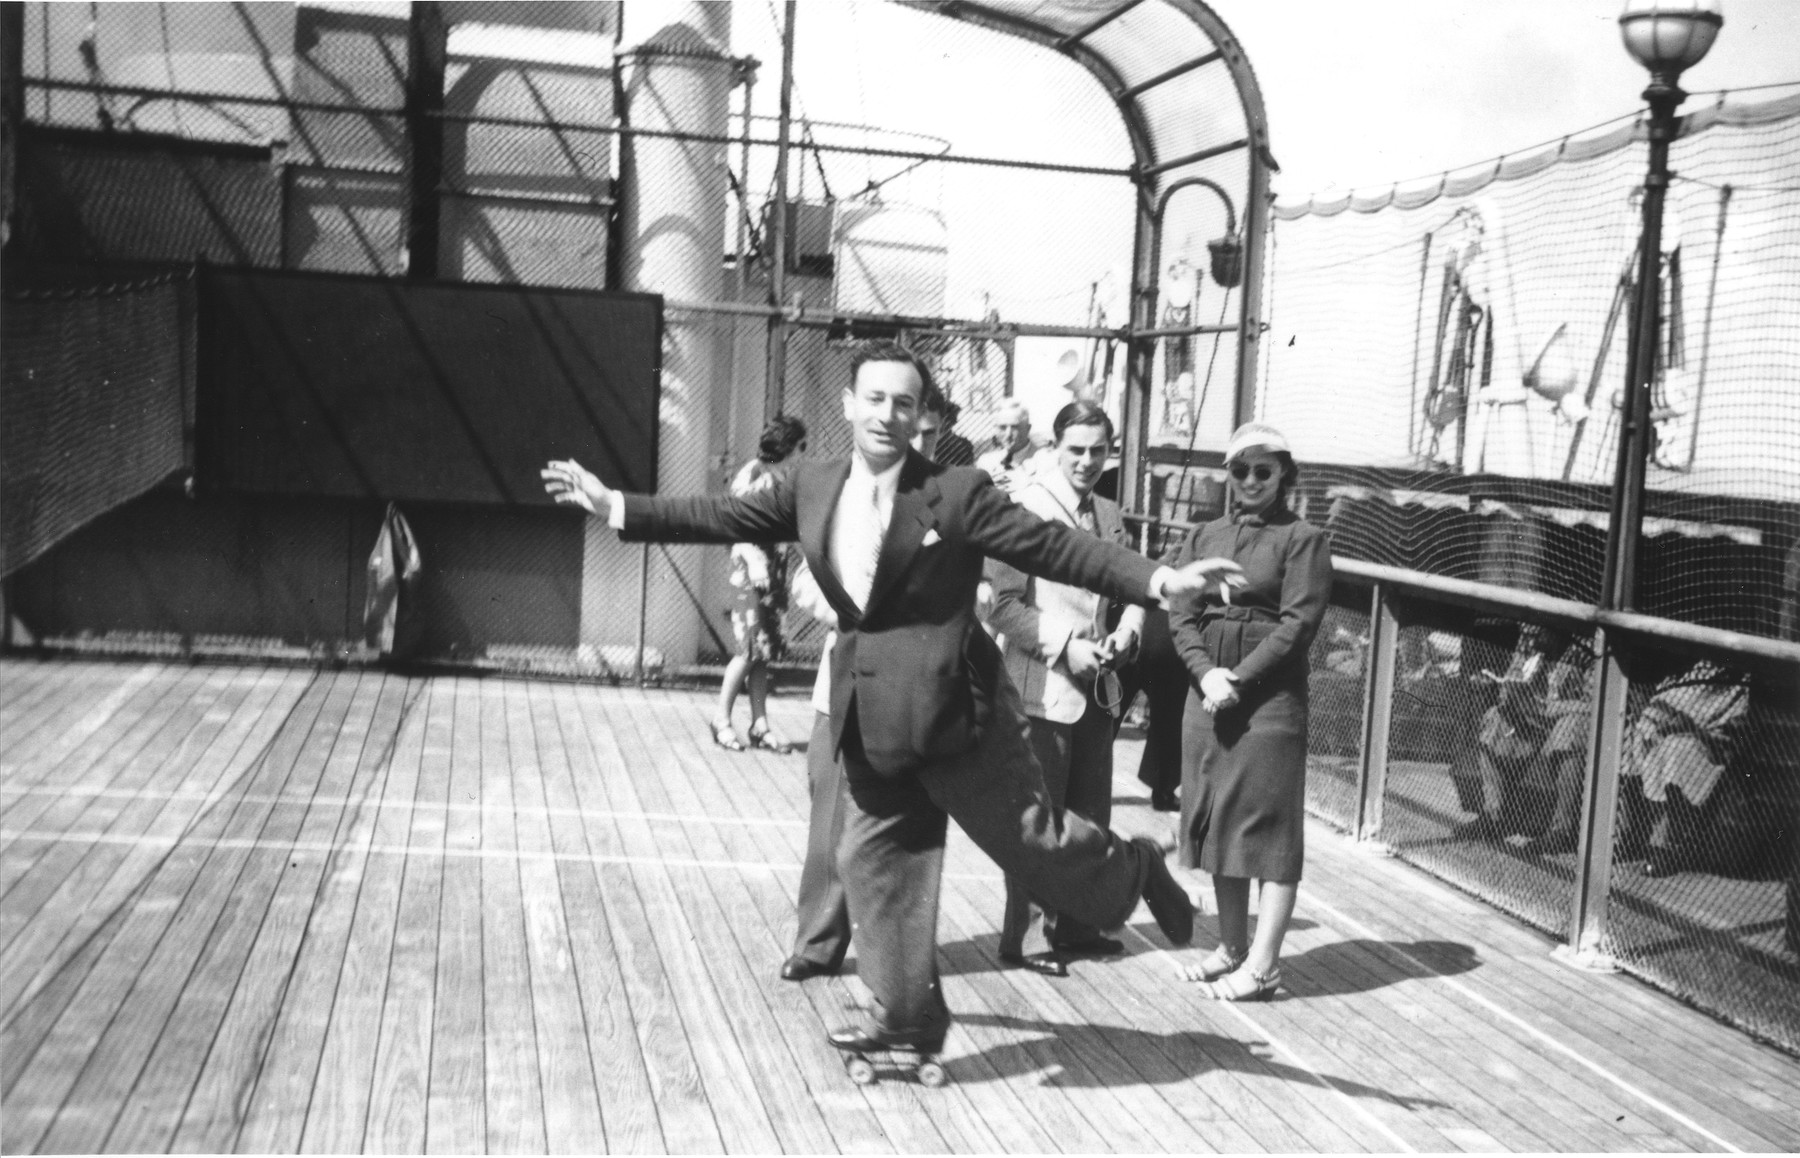 German Jewish refugee Werner Lenneberg roller skates on the deck of the MS St. Louis.